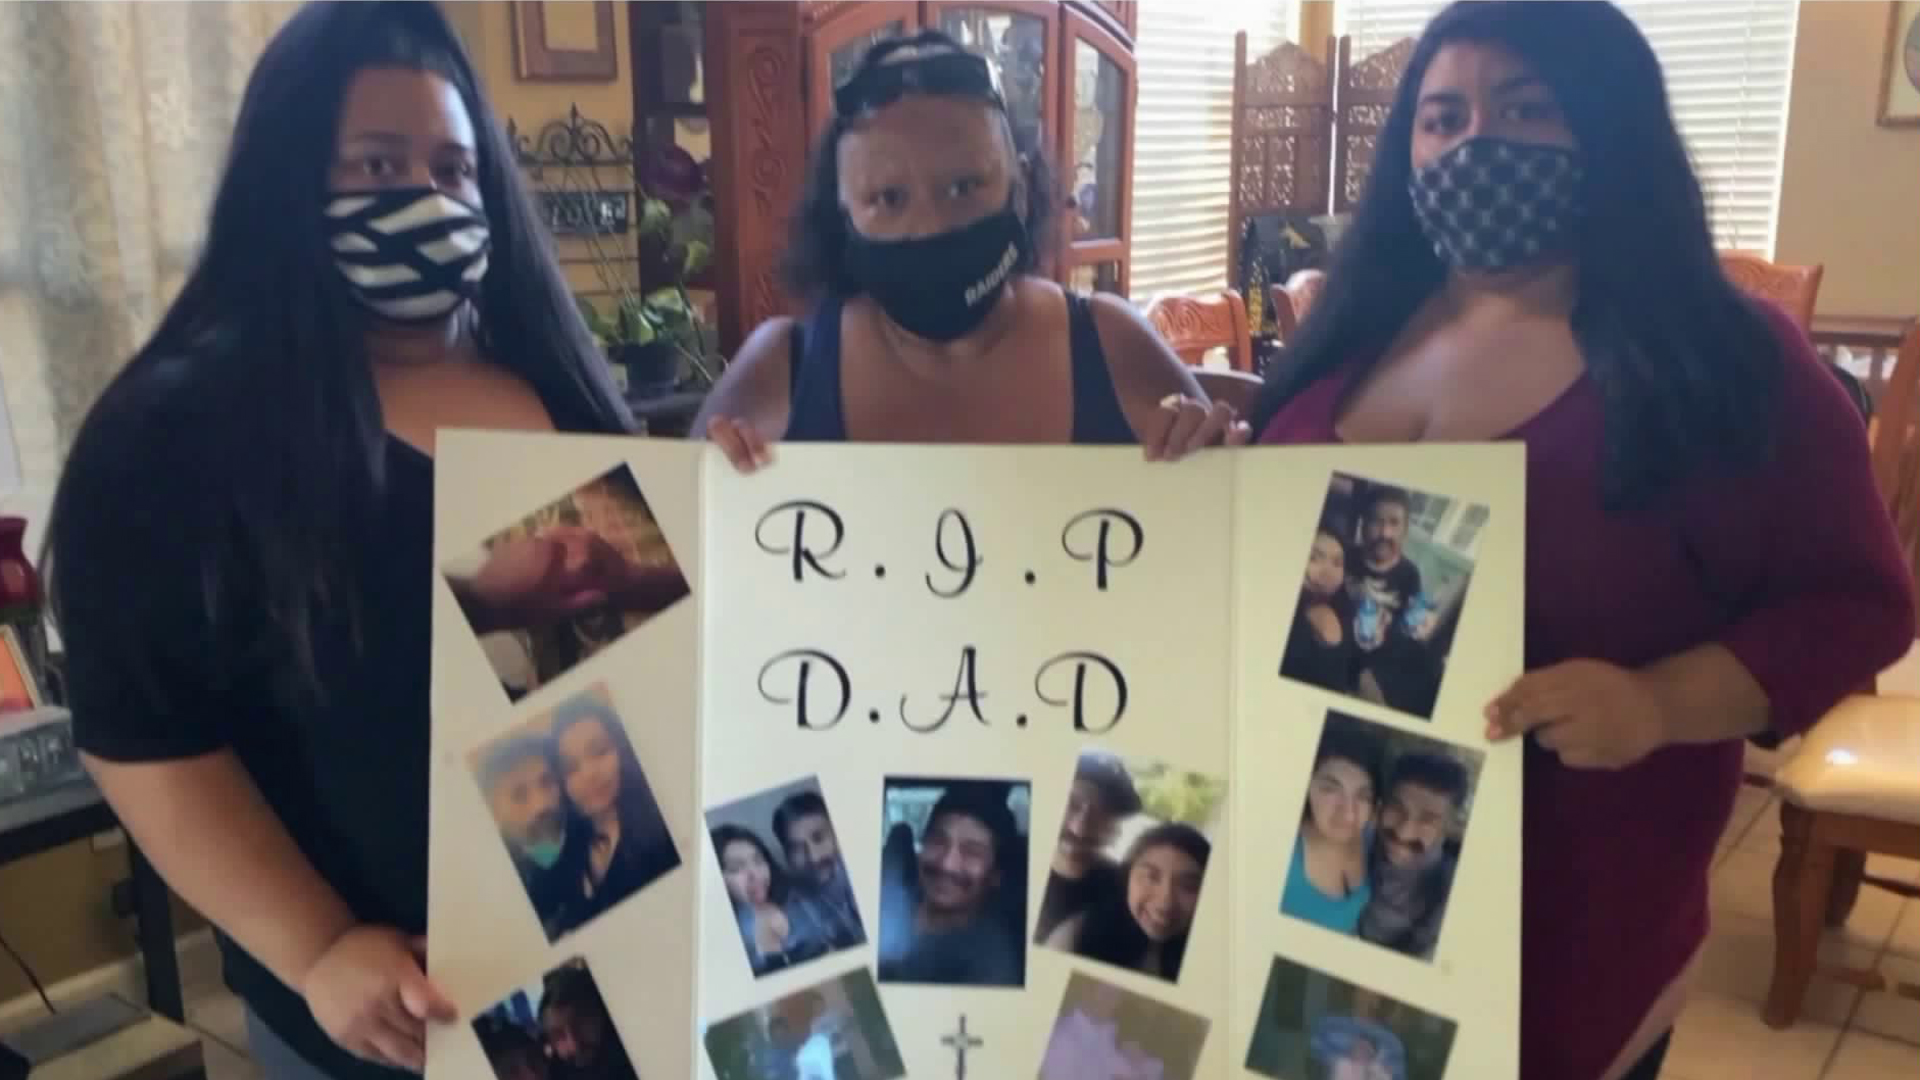 Family members hold up a poster remembering Daniel Garcia in a video posted to Facebook on July 13, 2020.